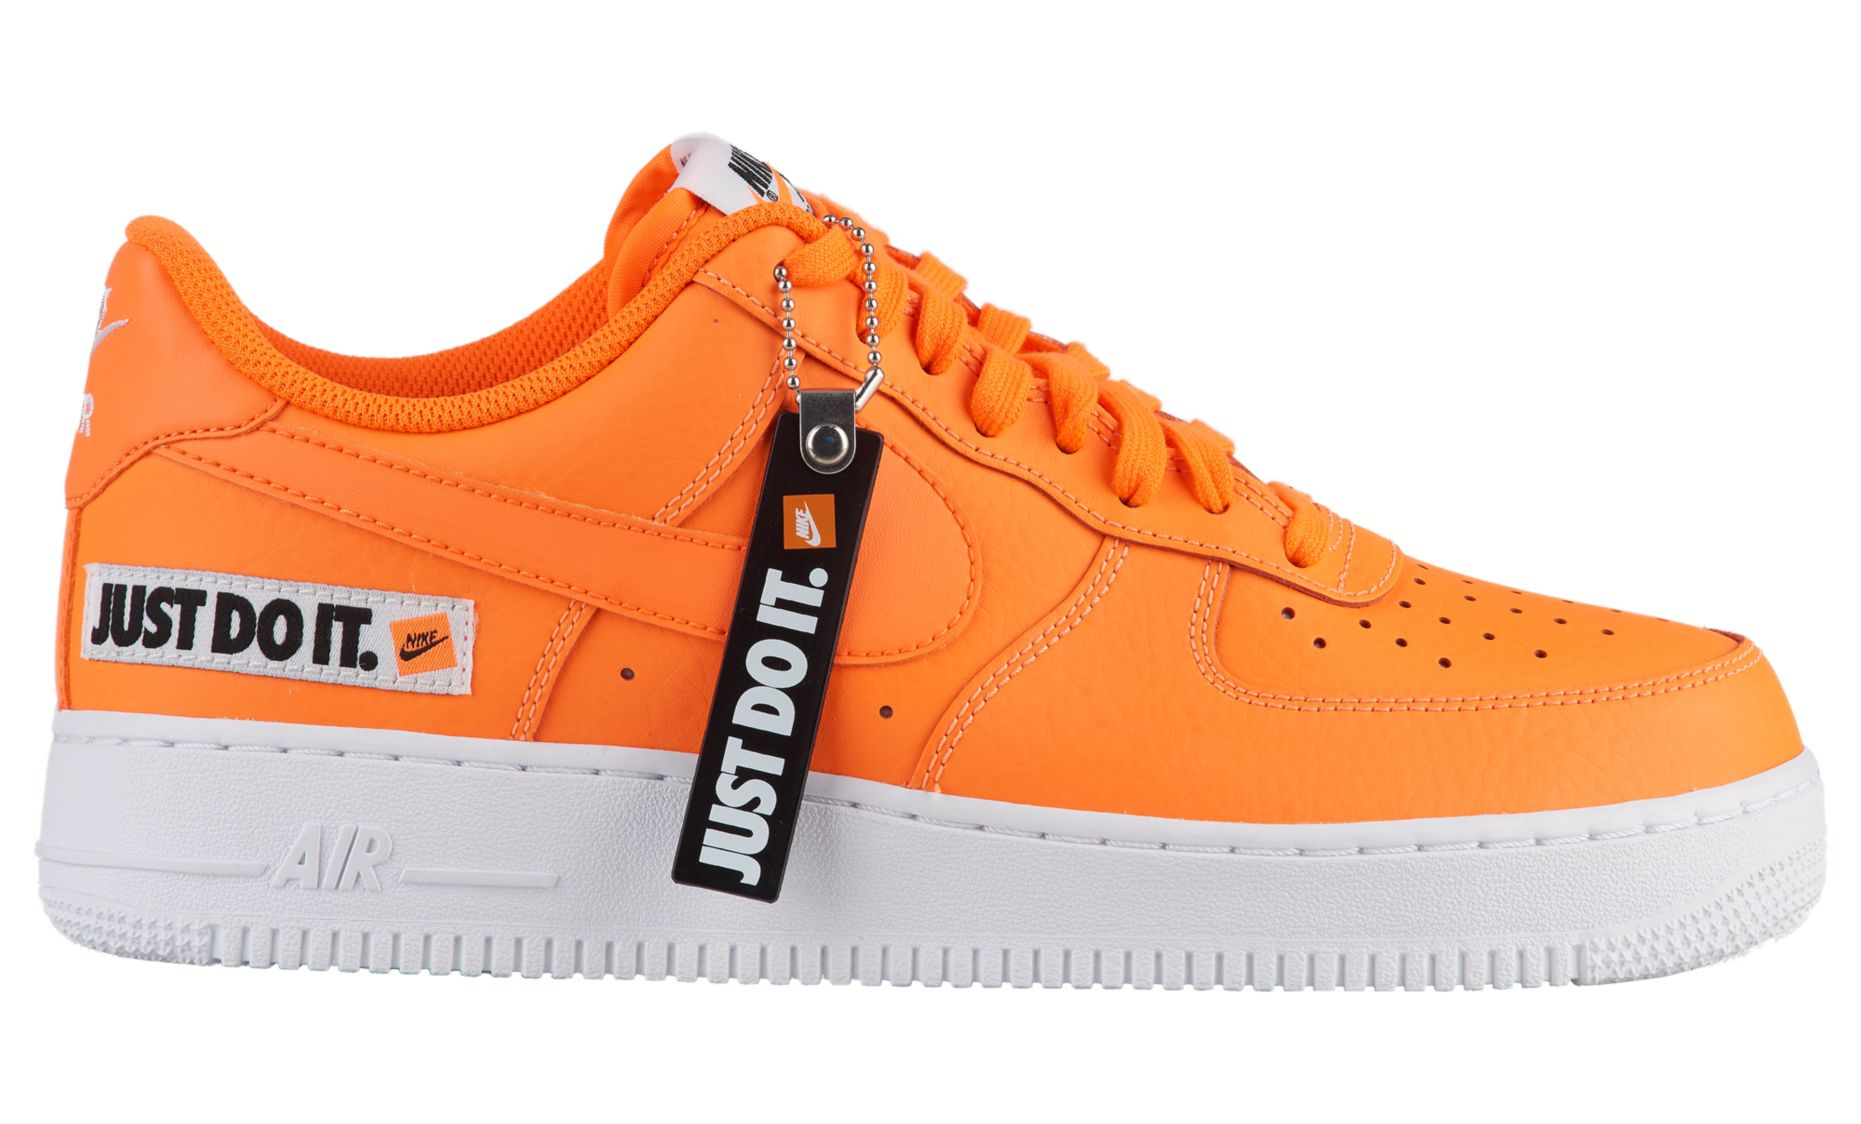 online retailer 83ba0 f08c4 The Nike Air Force 1 Low 'Just Do It' Has a Release Date ...